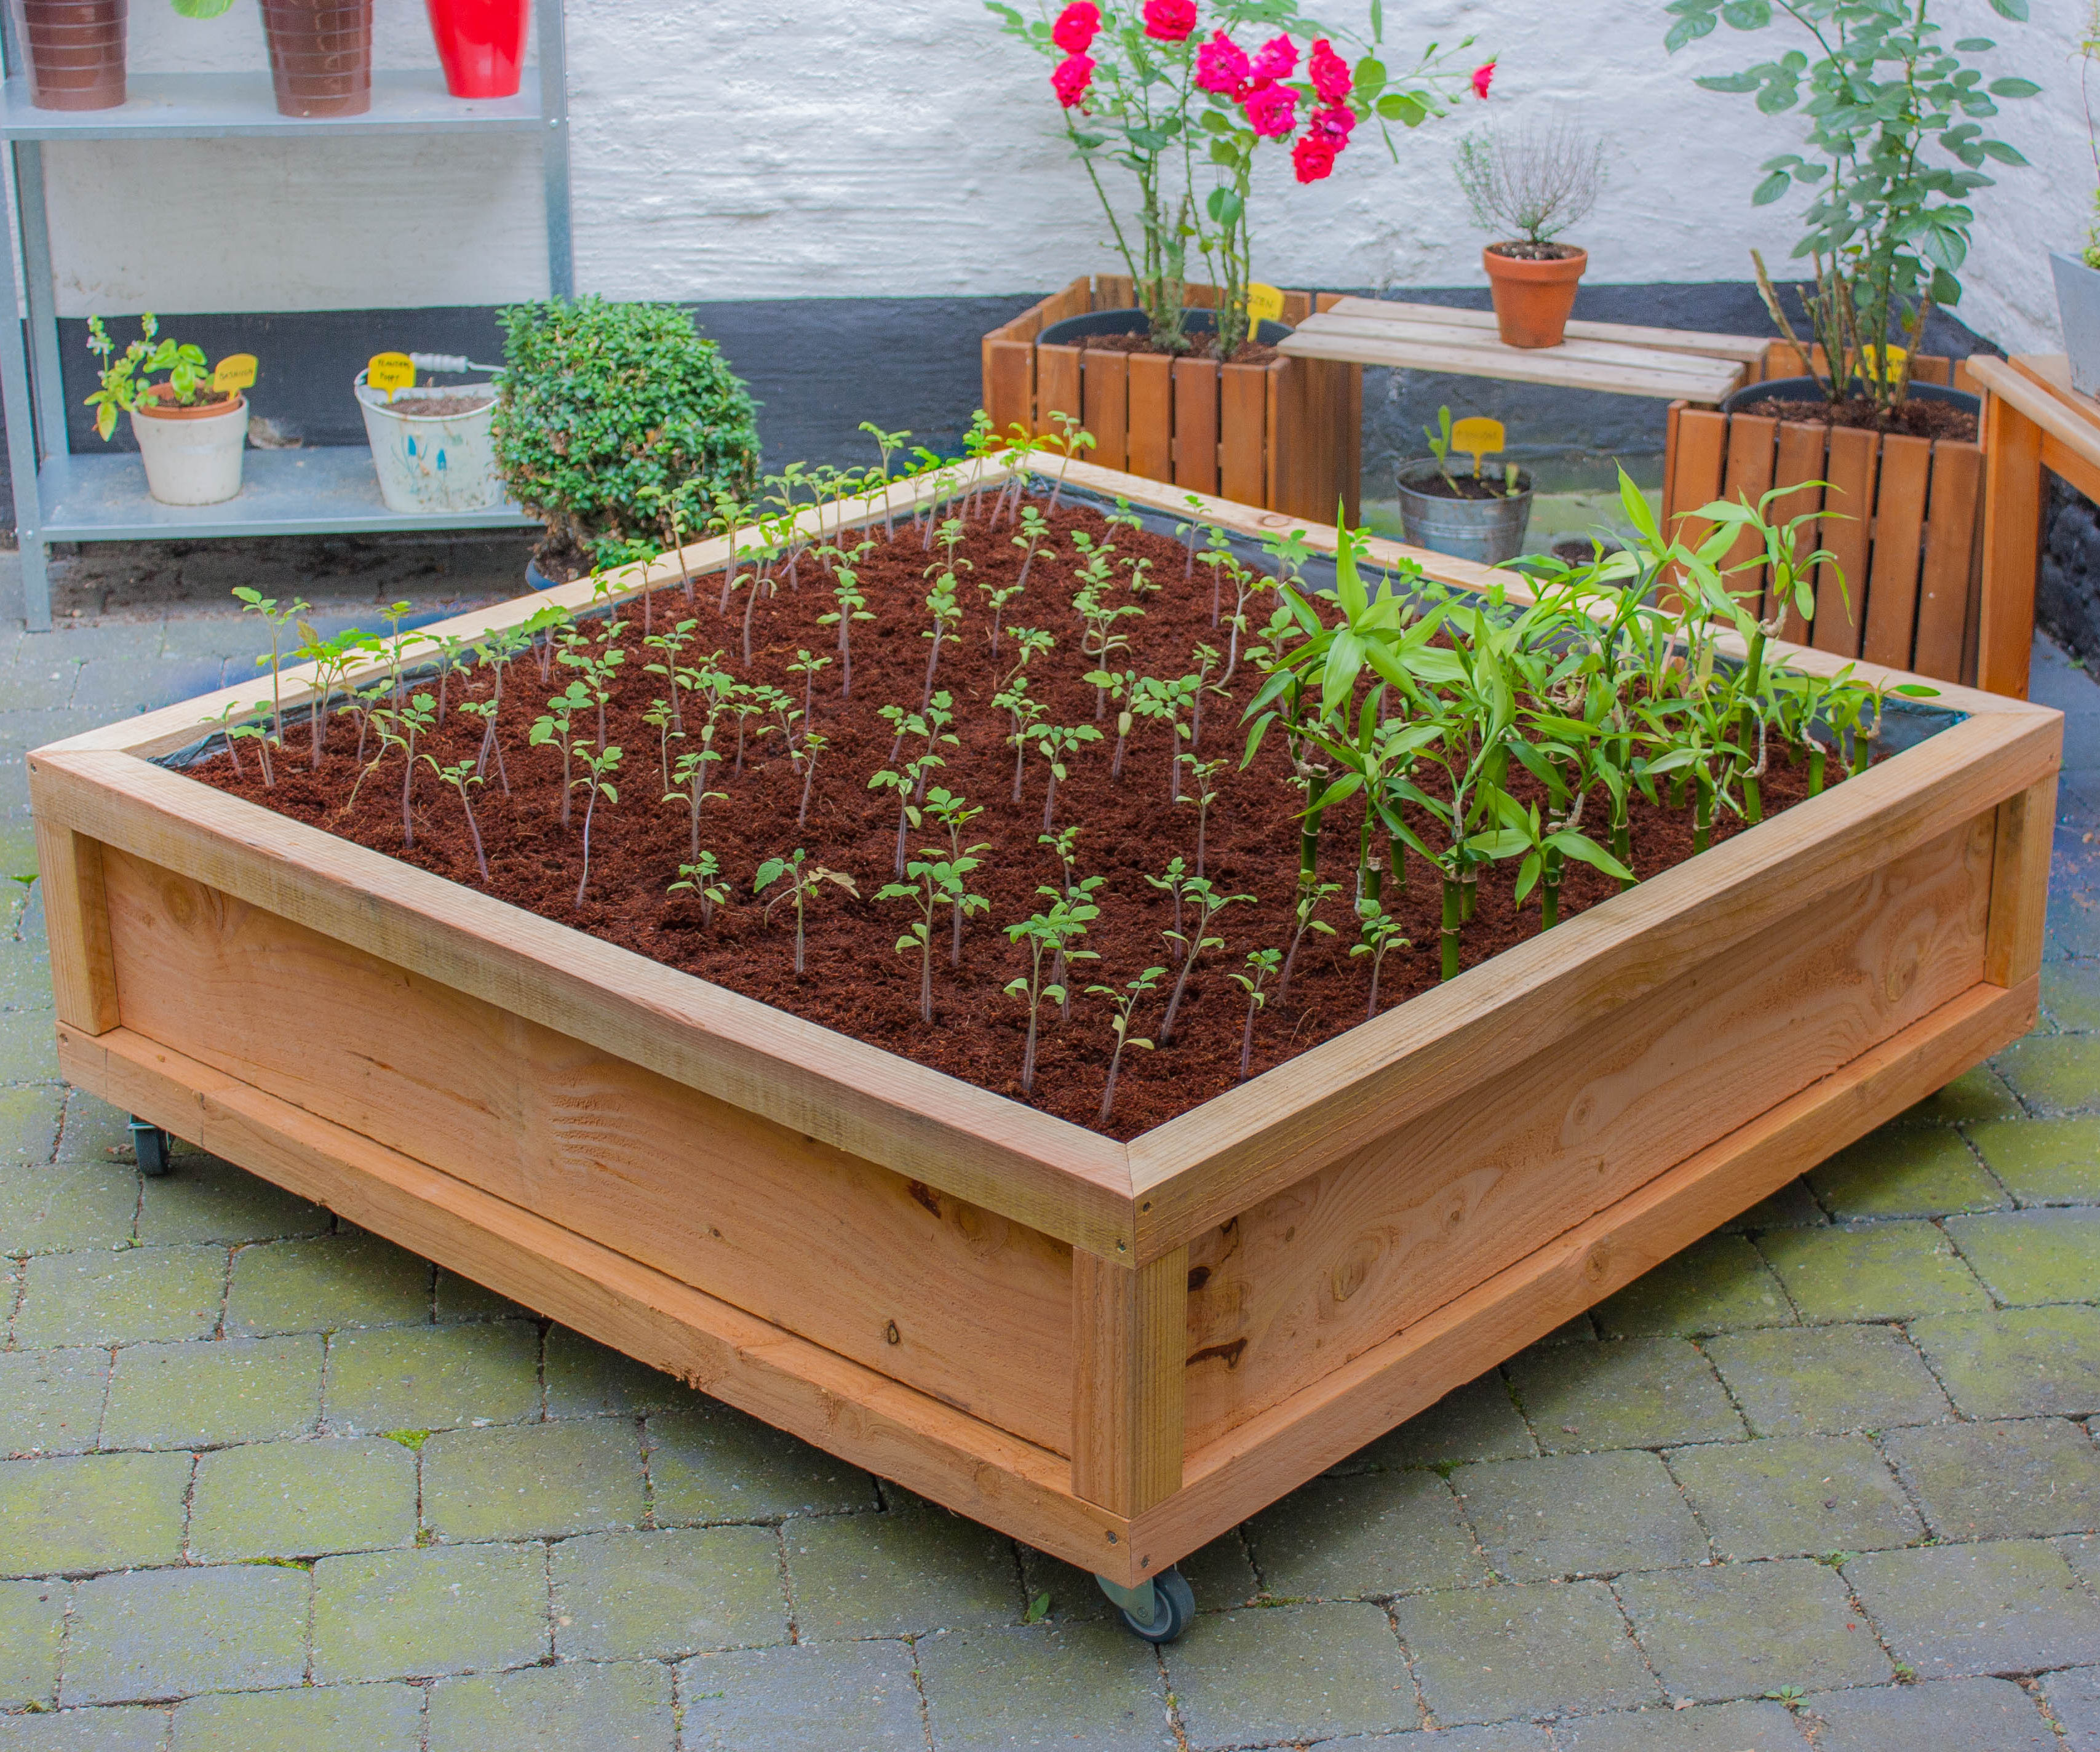 Square meter vegetable garden on wheels